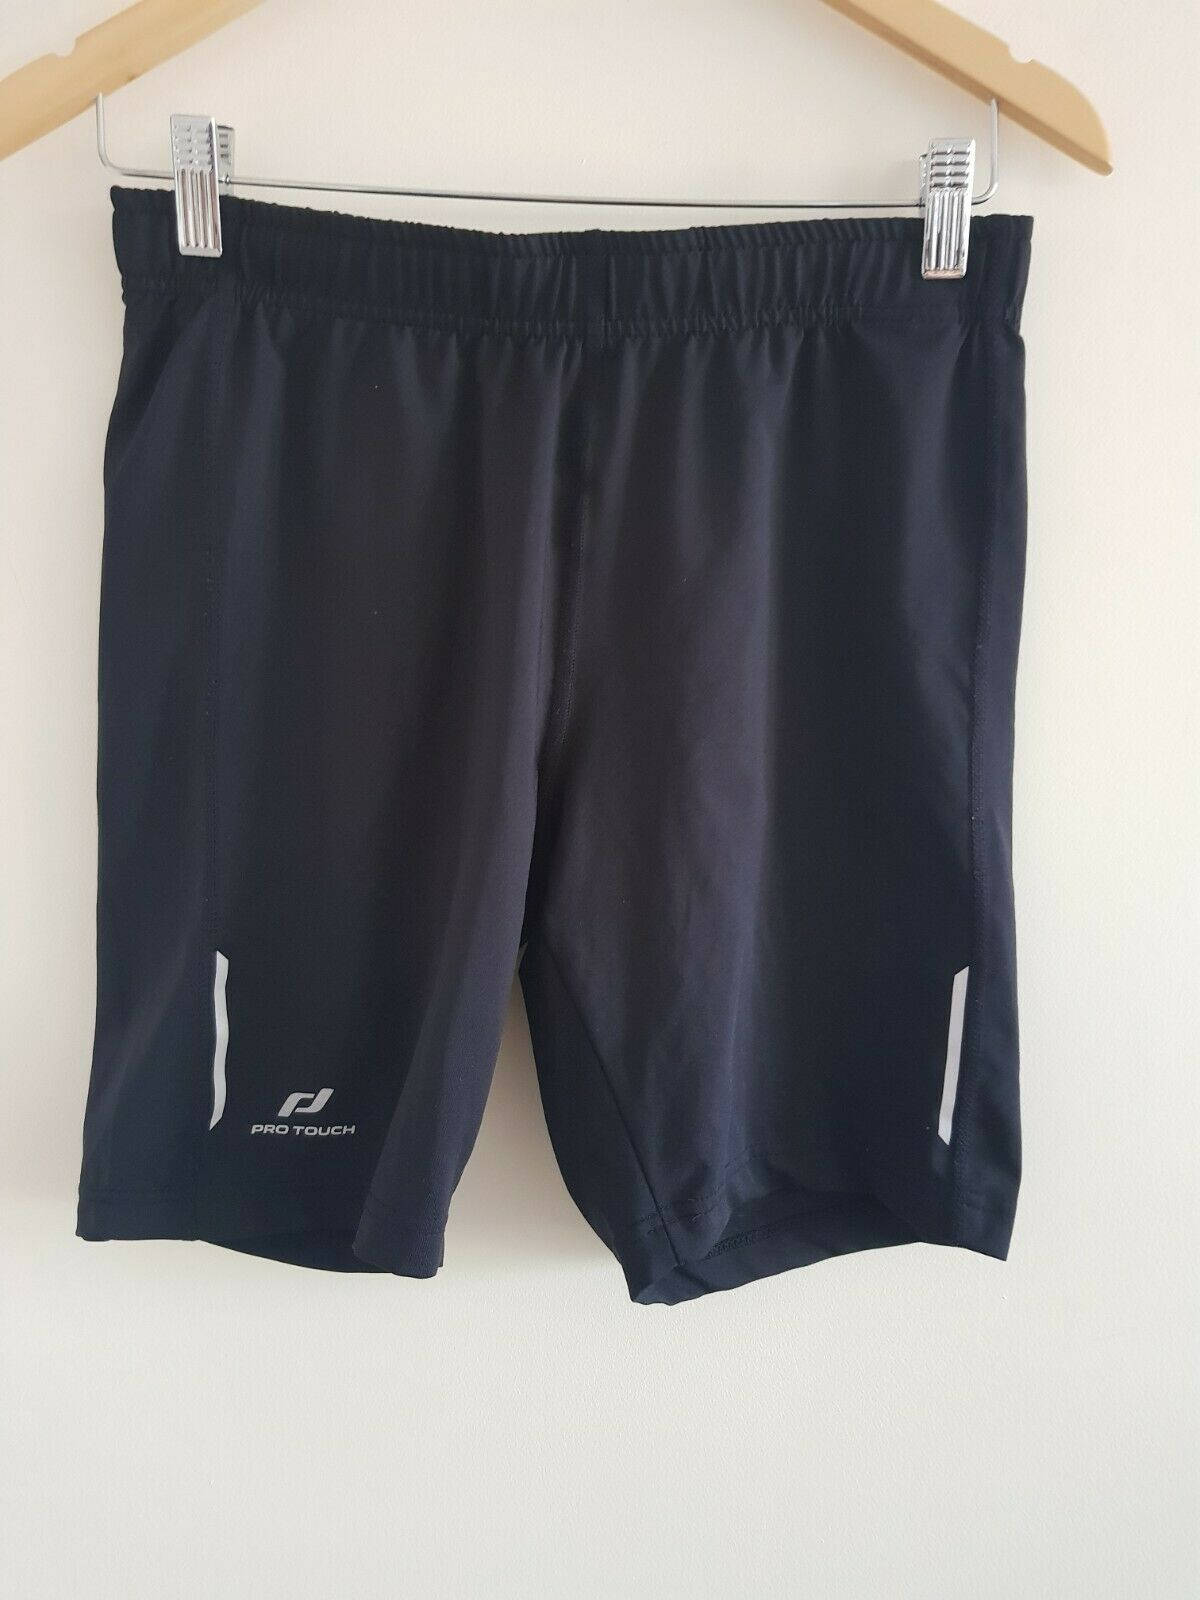 Mens Shorts Large Black Pro Touch Active <EE4235z